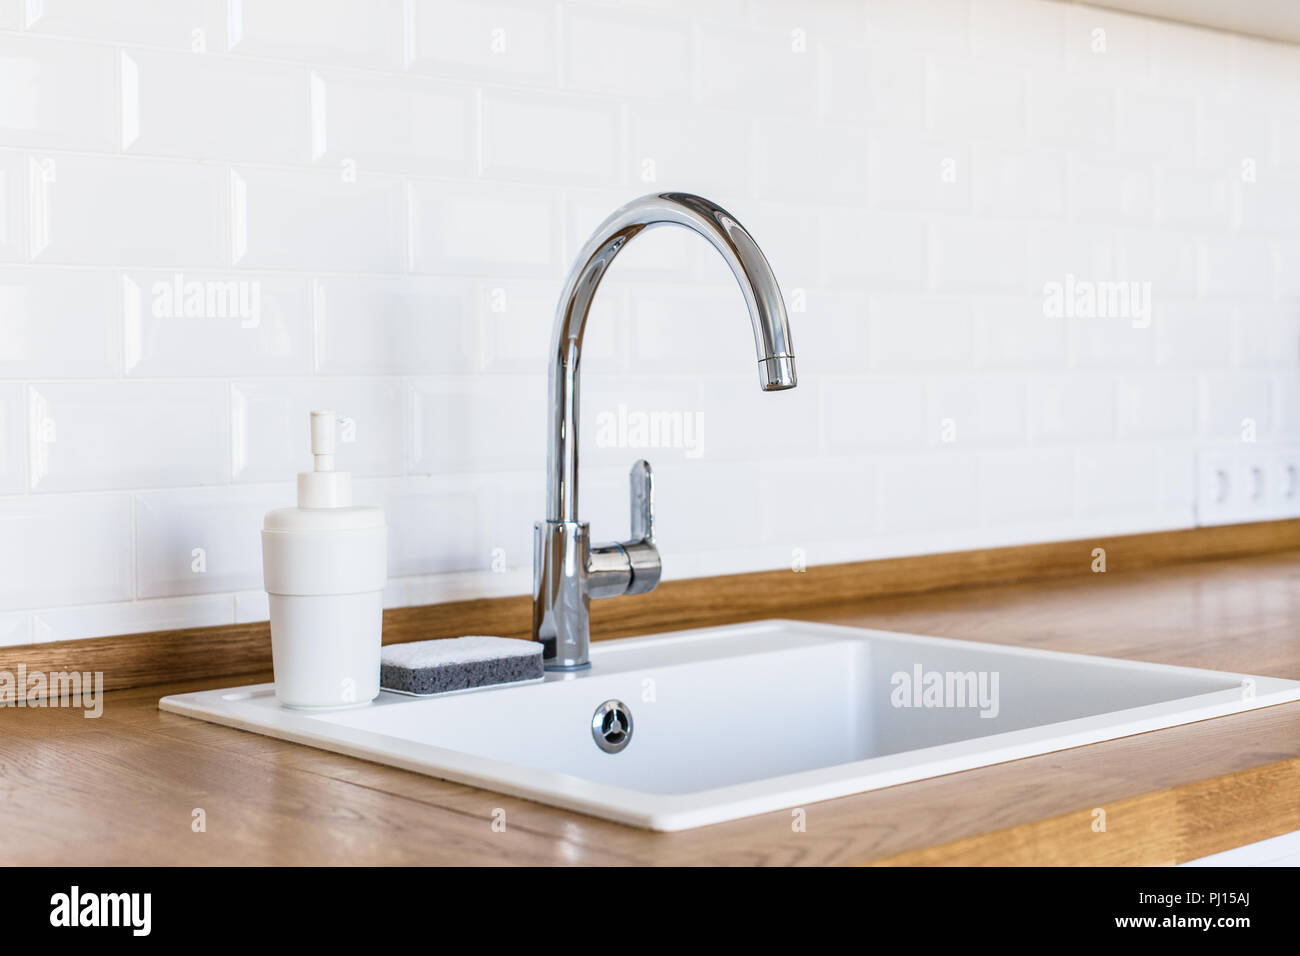 Clean Kitchen White Sink Soap Dispenser And Sponge For Washing